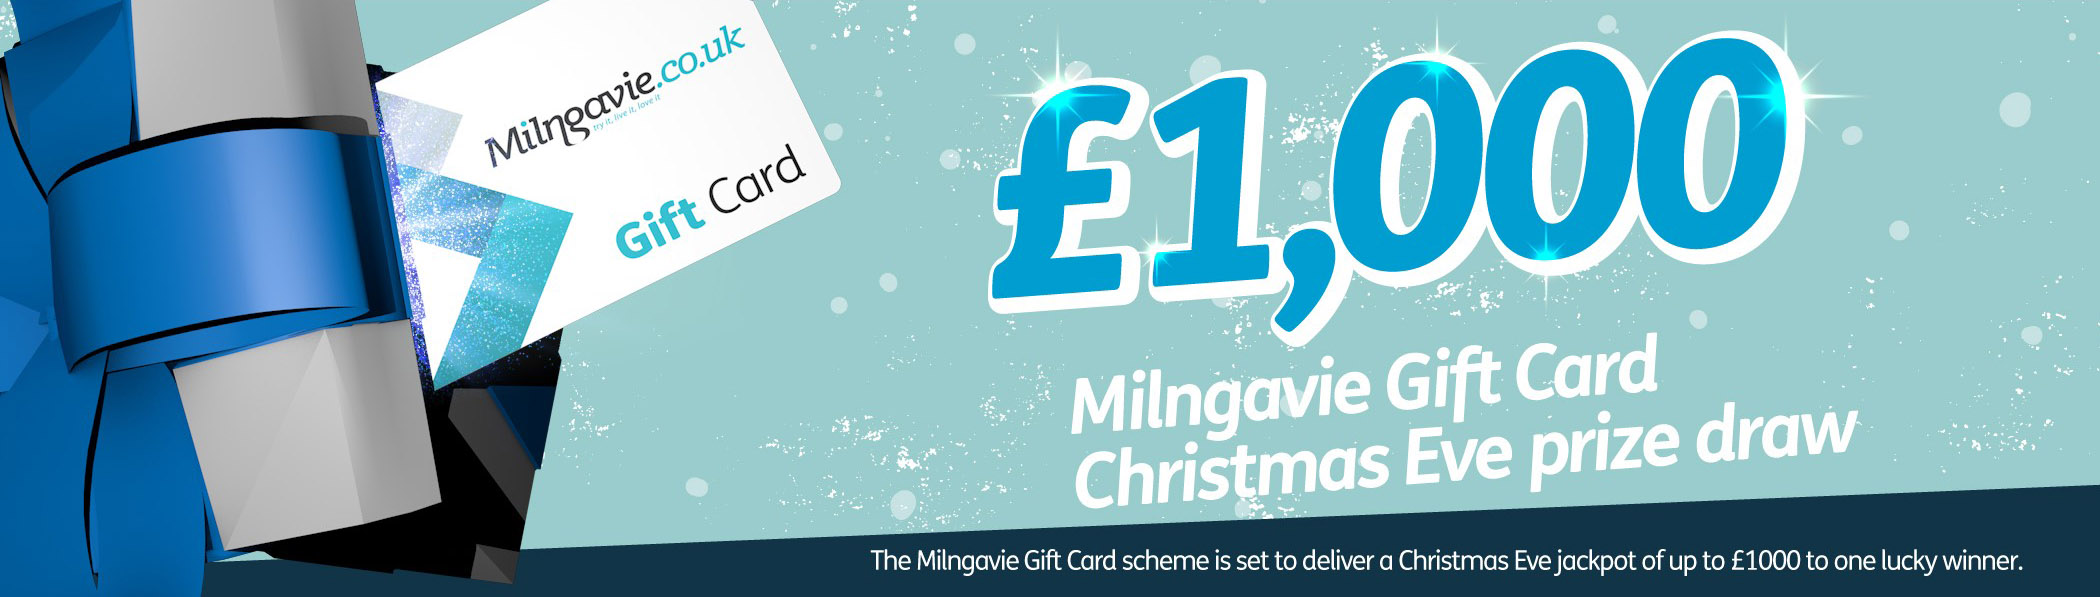 Gift Card Christmas Draw